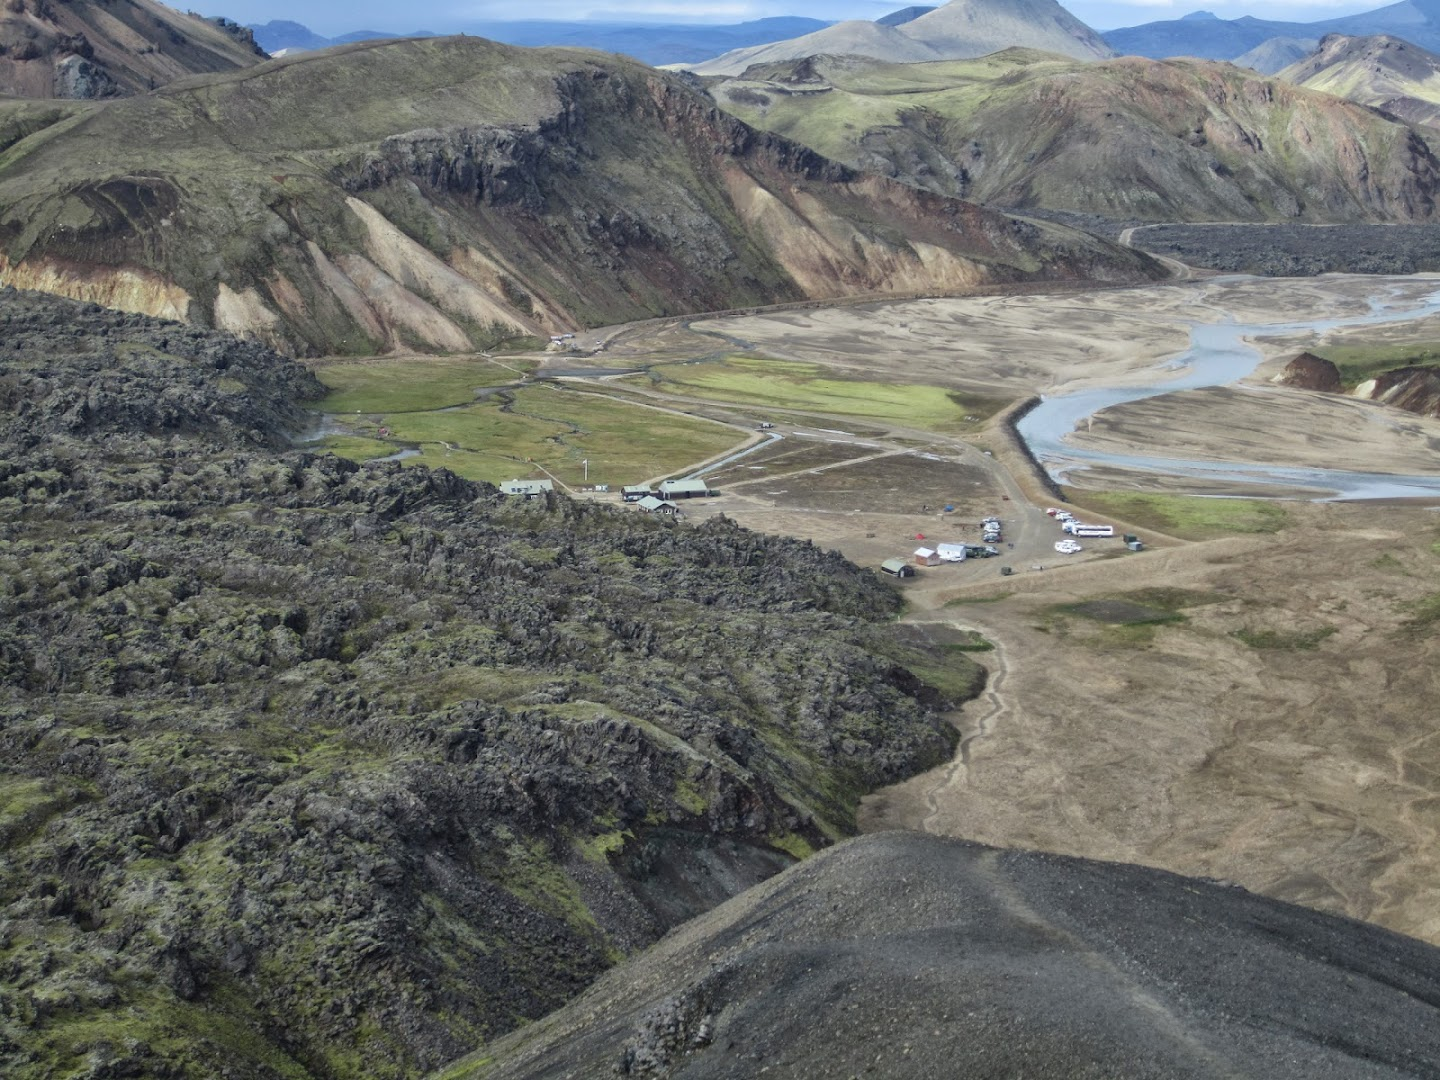 Landmannalaugar camp lies just next to lava flow. VK